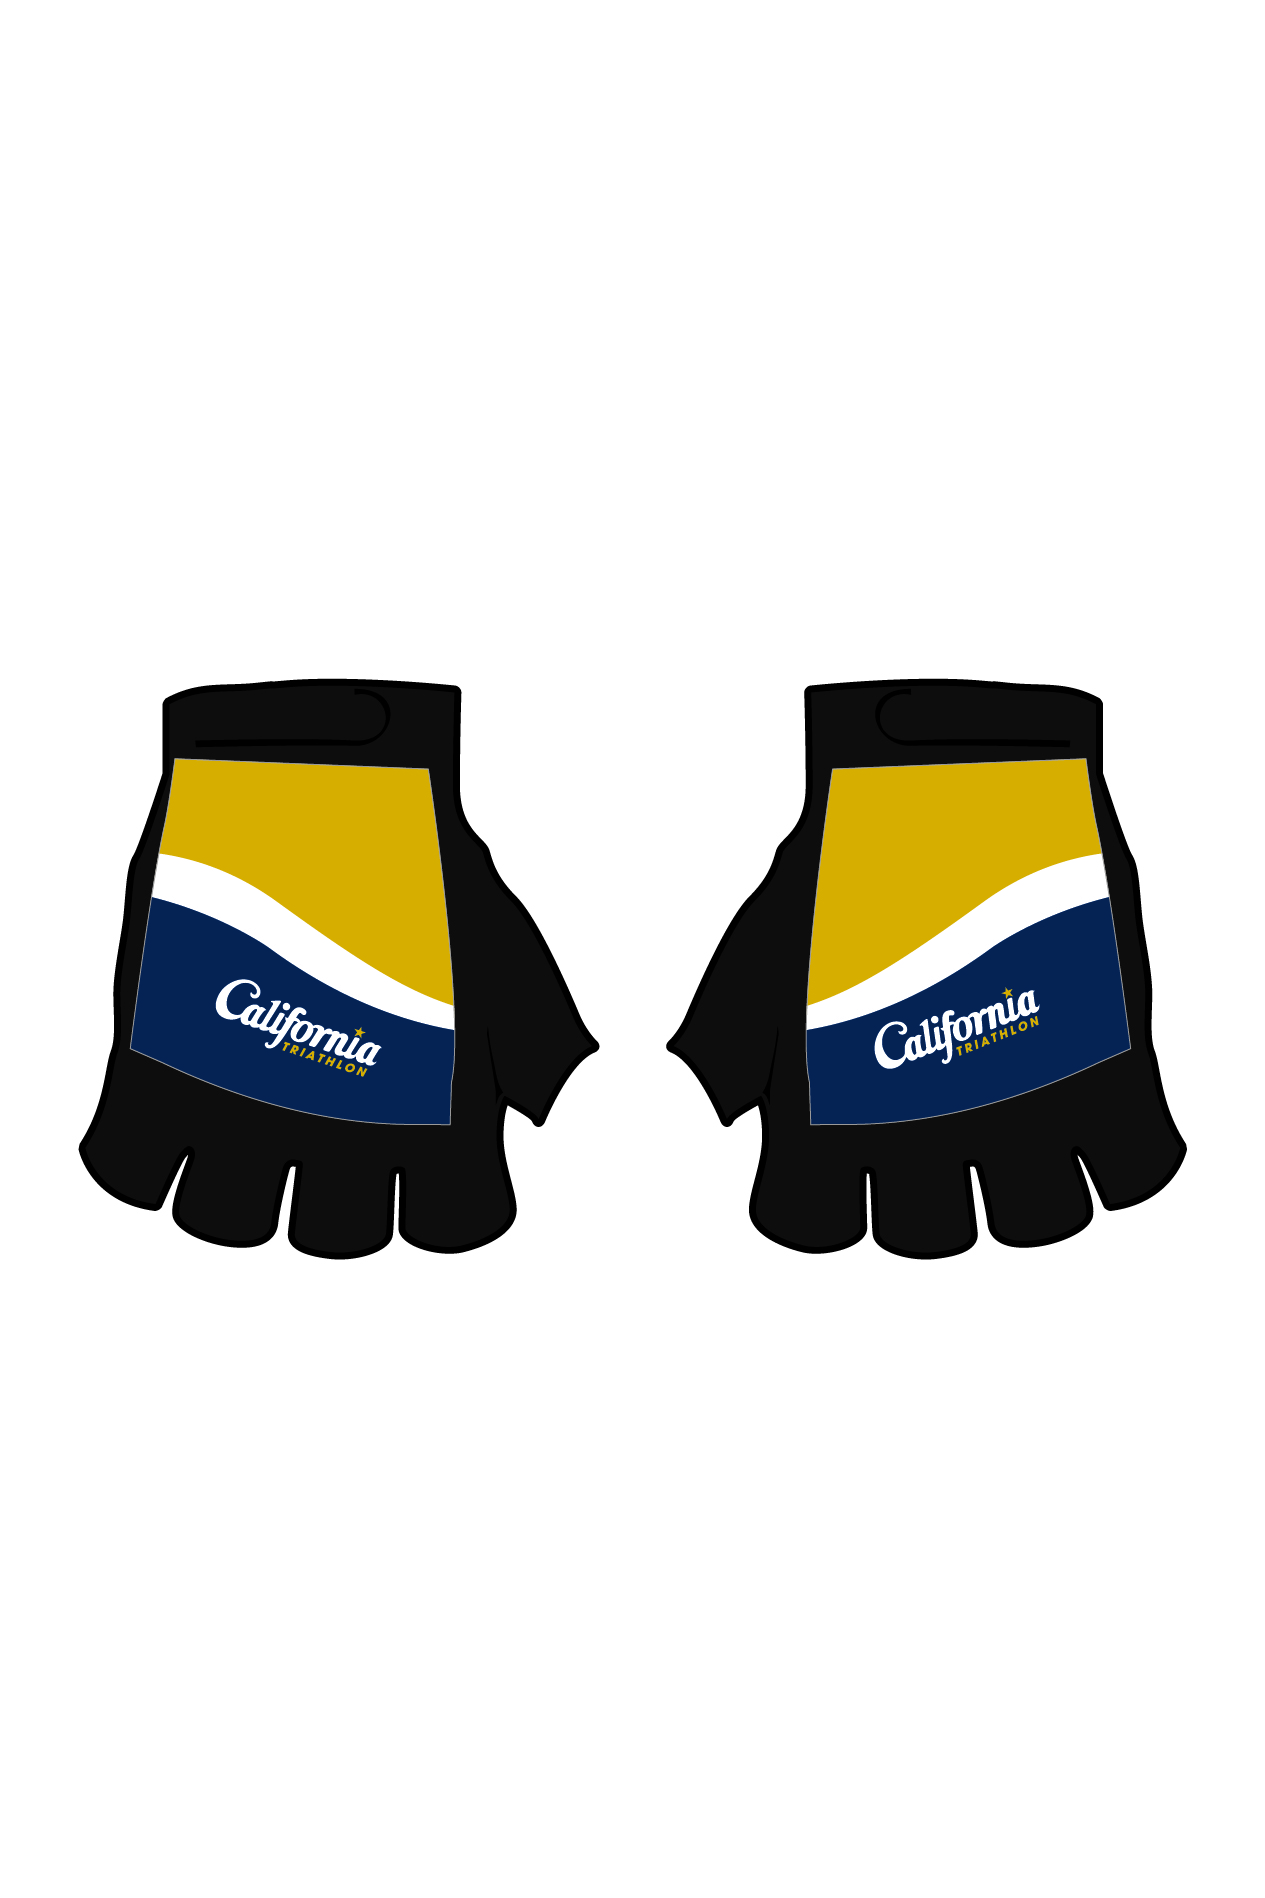 California Triathlon Gloves Image